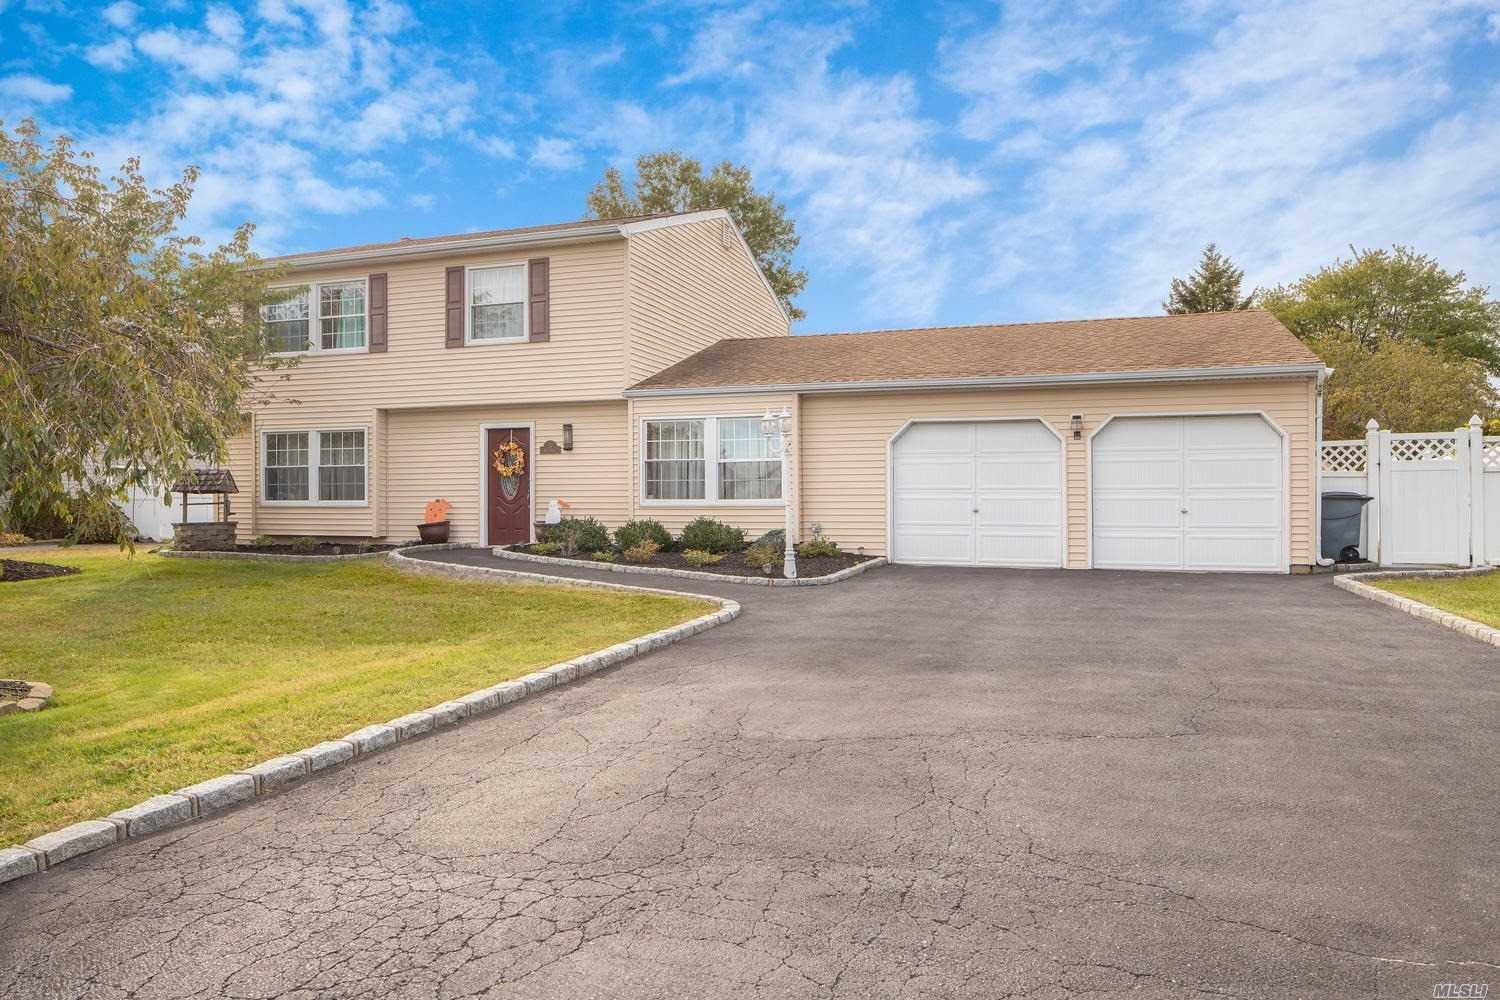 Photo of home for sale at 10 Sprat St, Medford NY